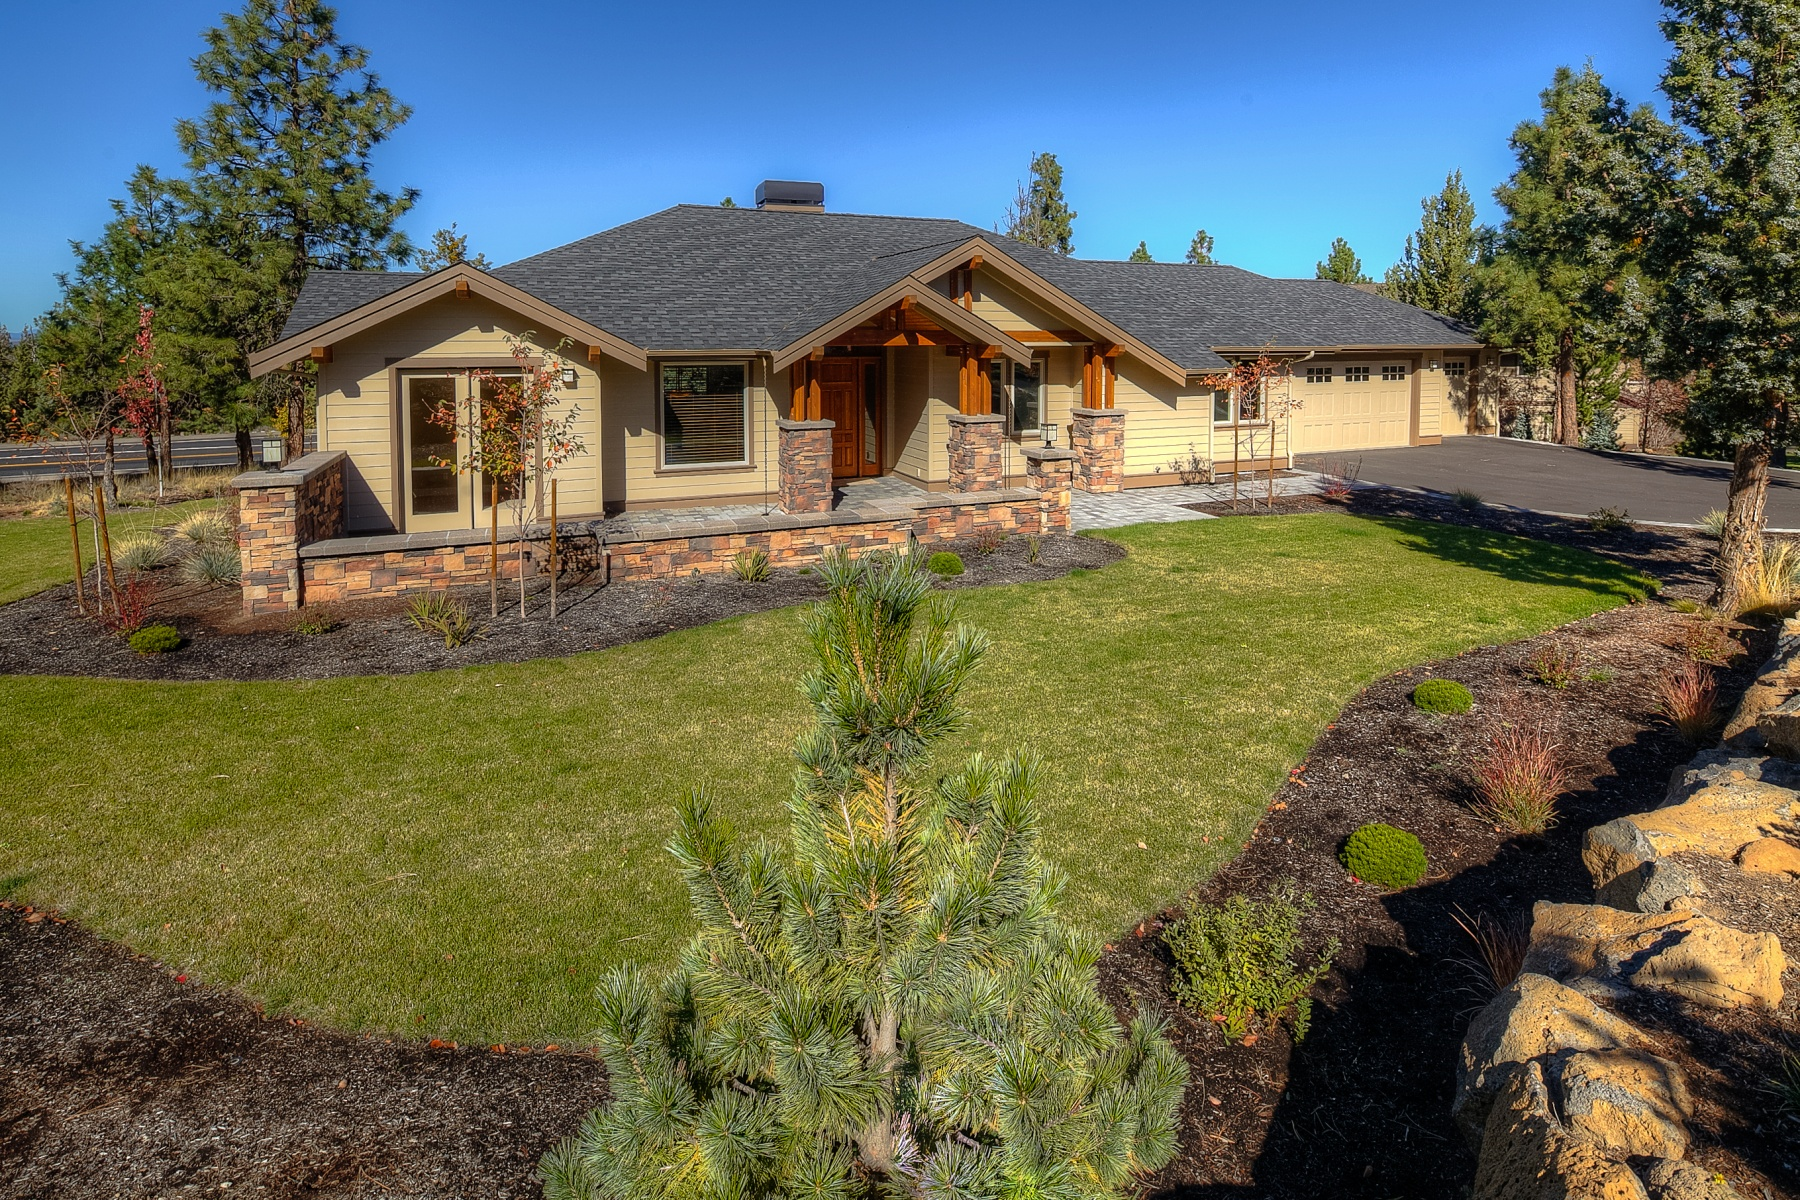 Property For Sale at Brand New Home in Awbrey Butte